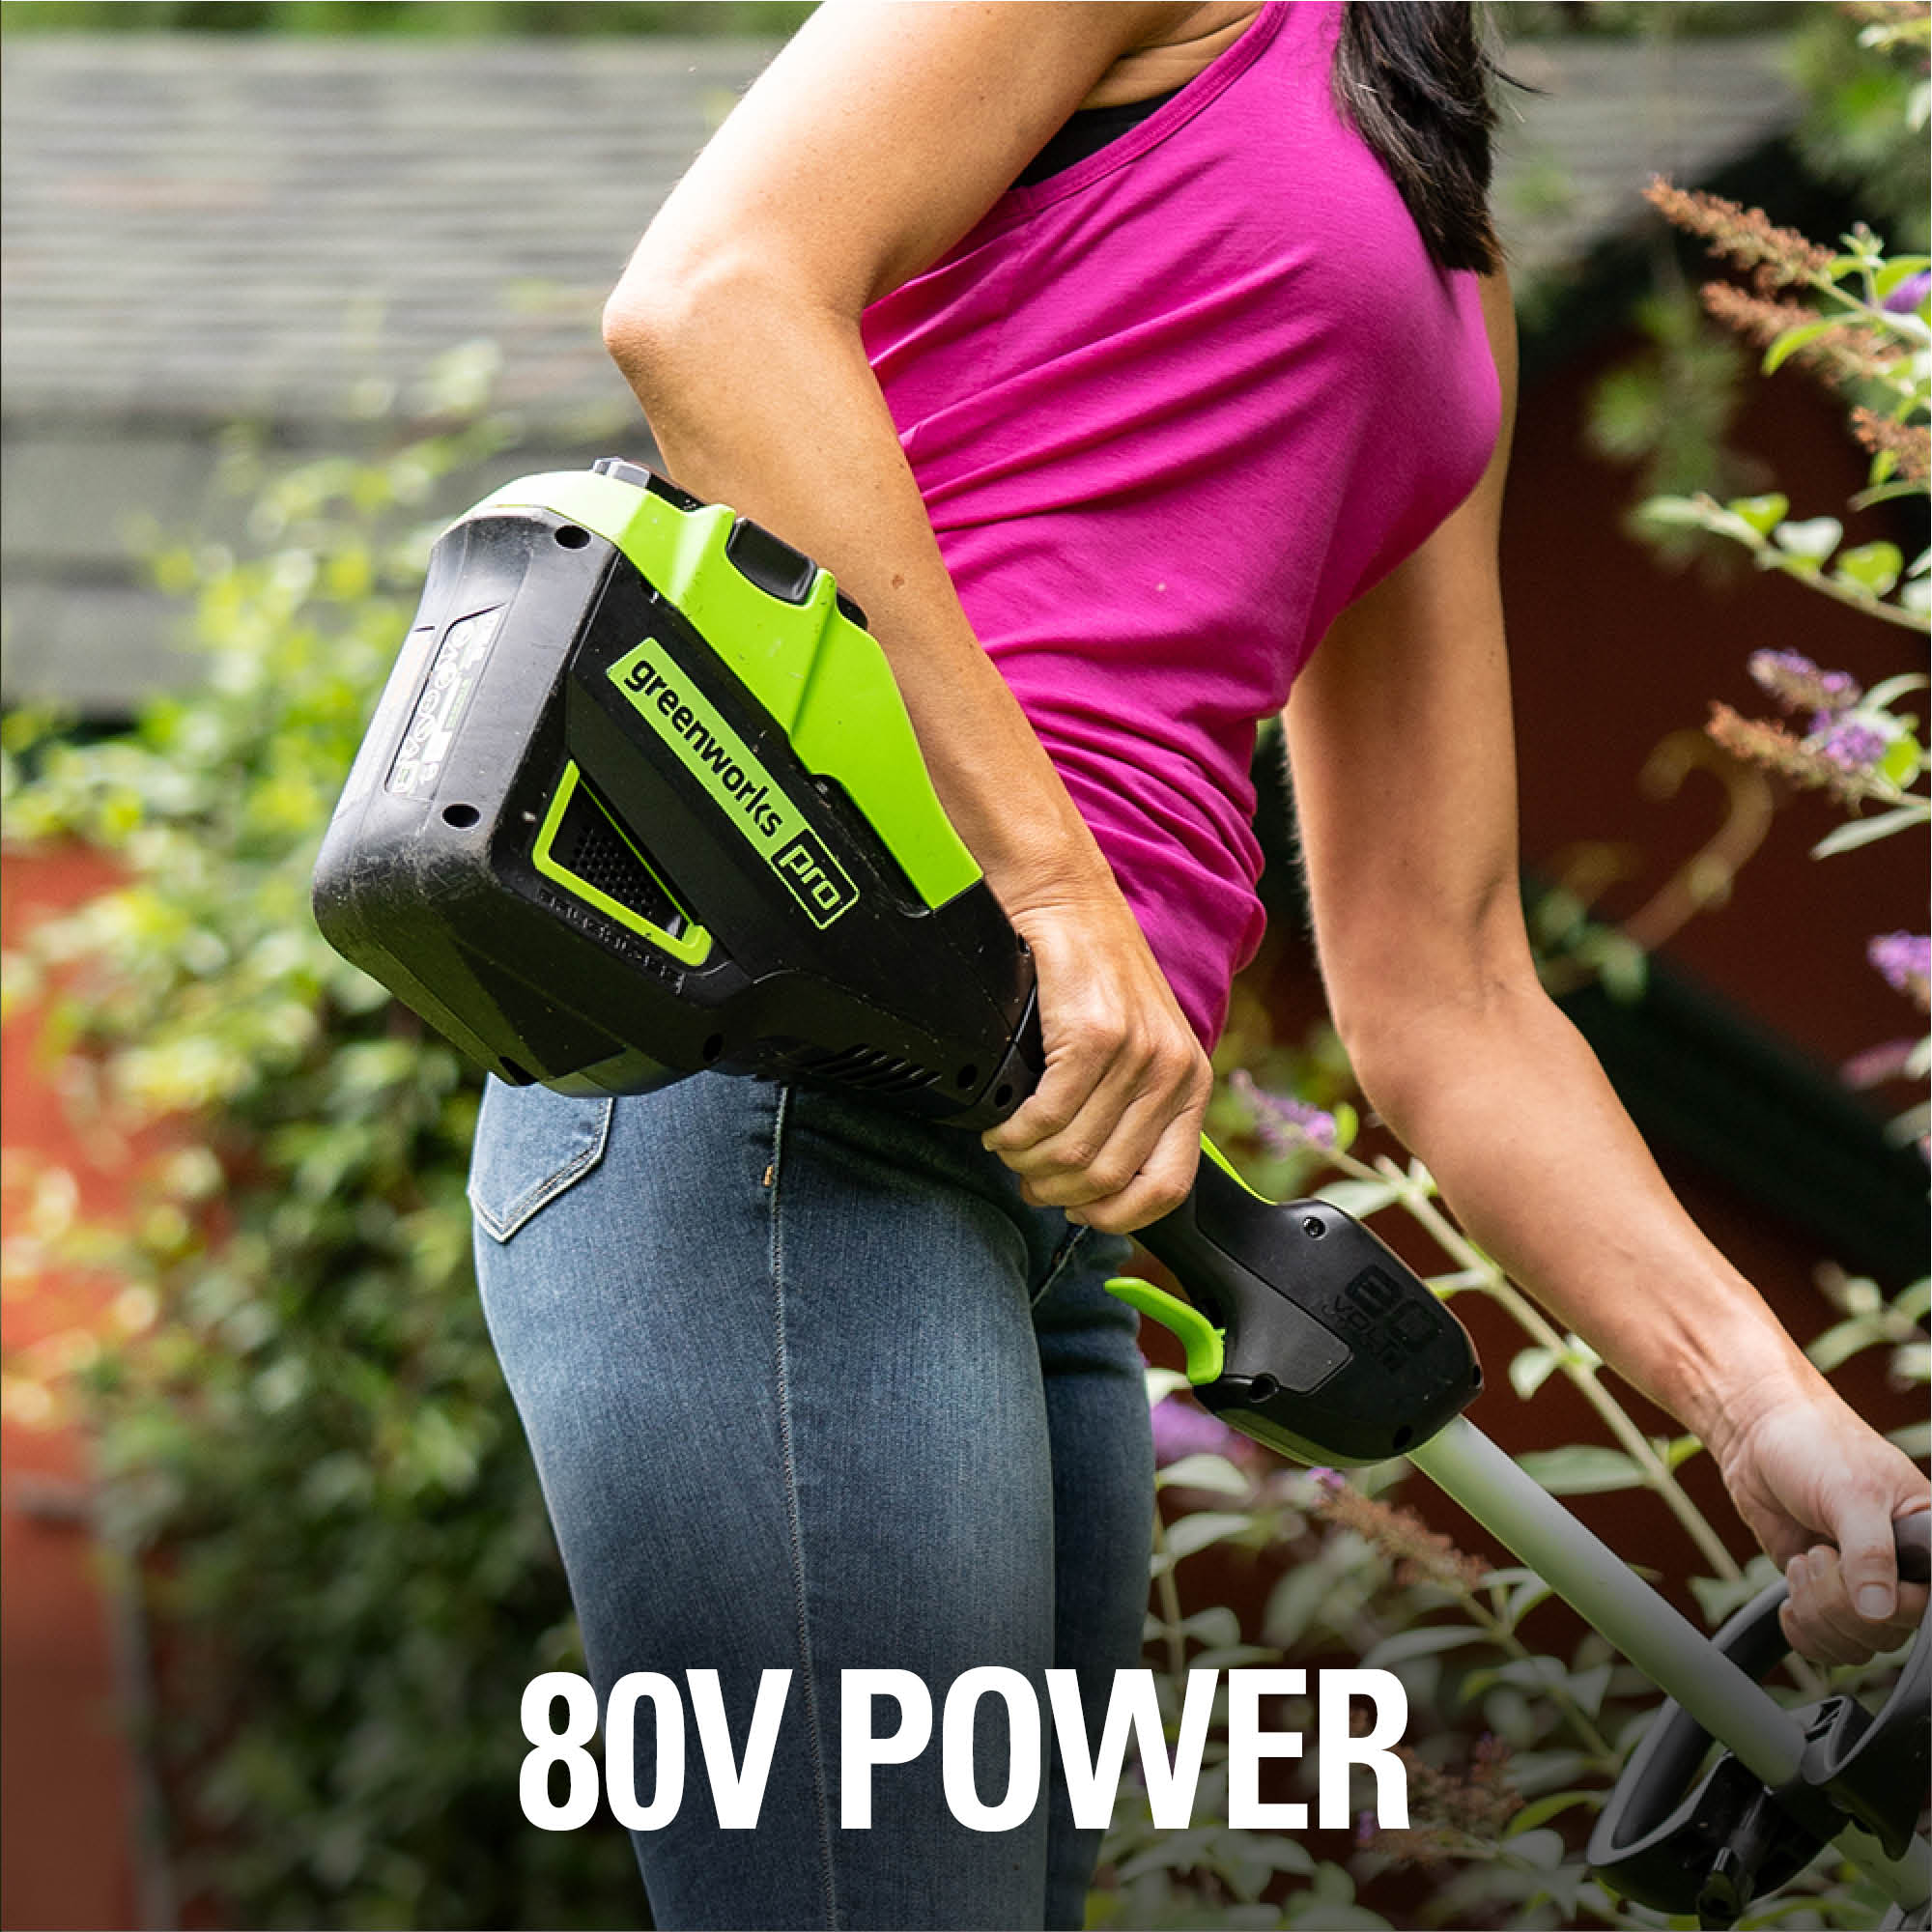 powered by 80v lithium ion battery motor